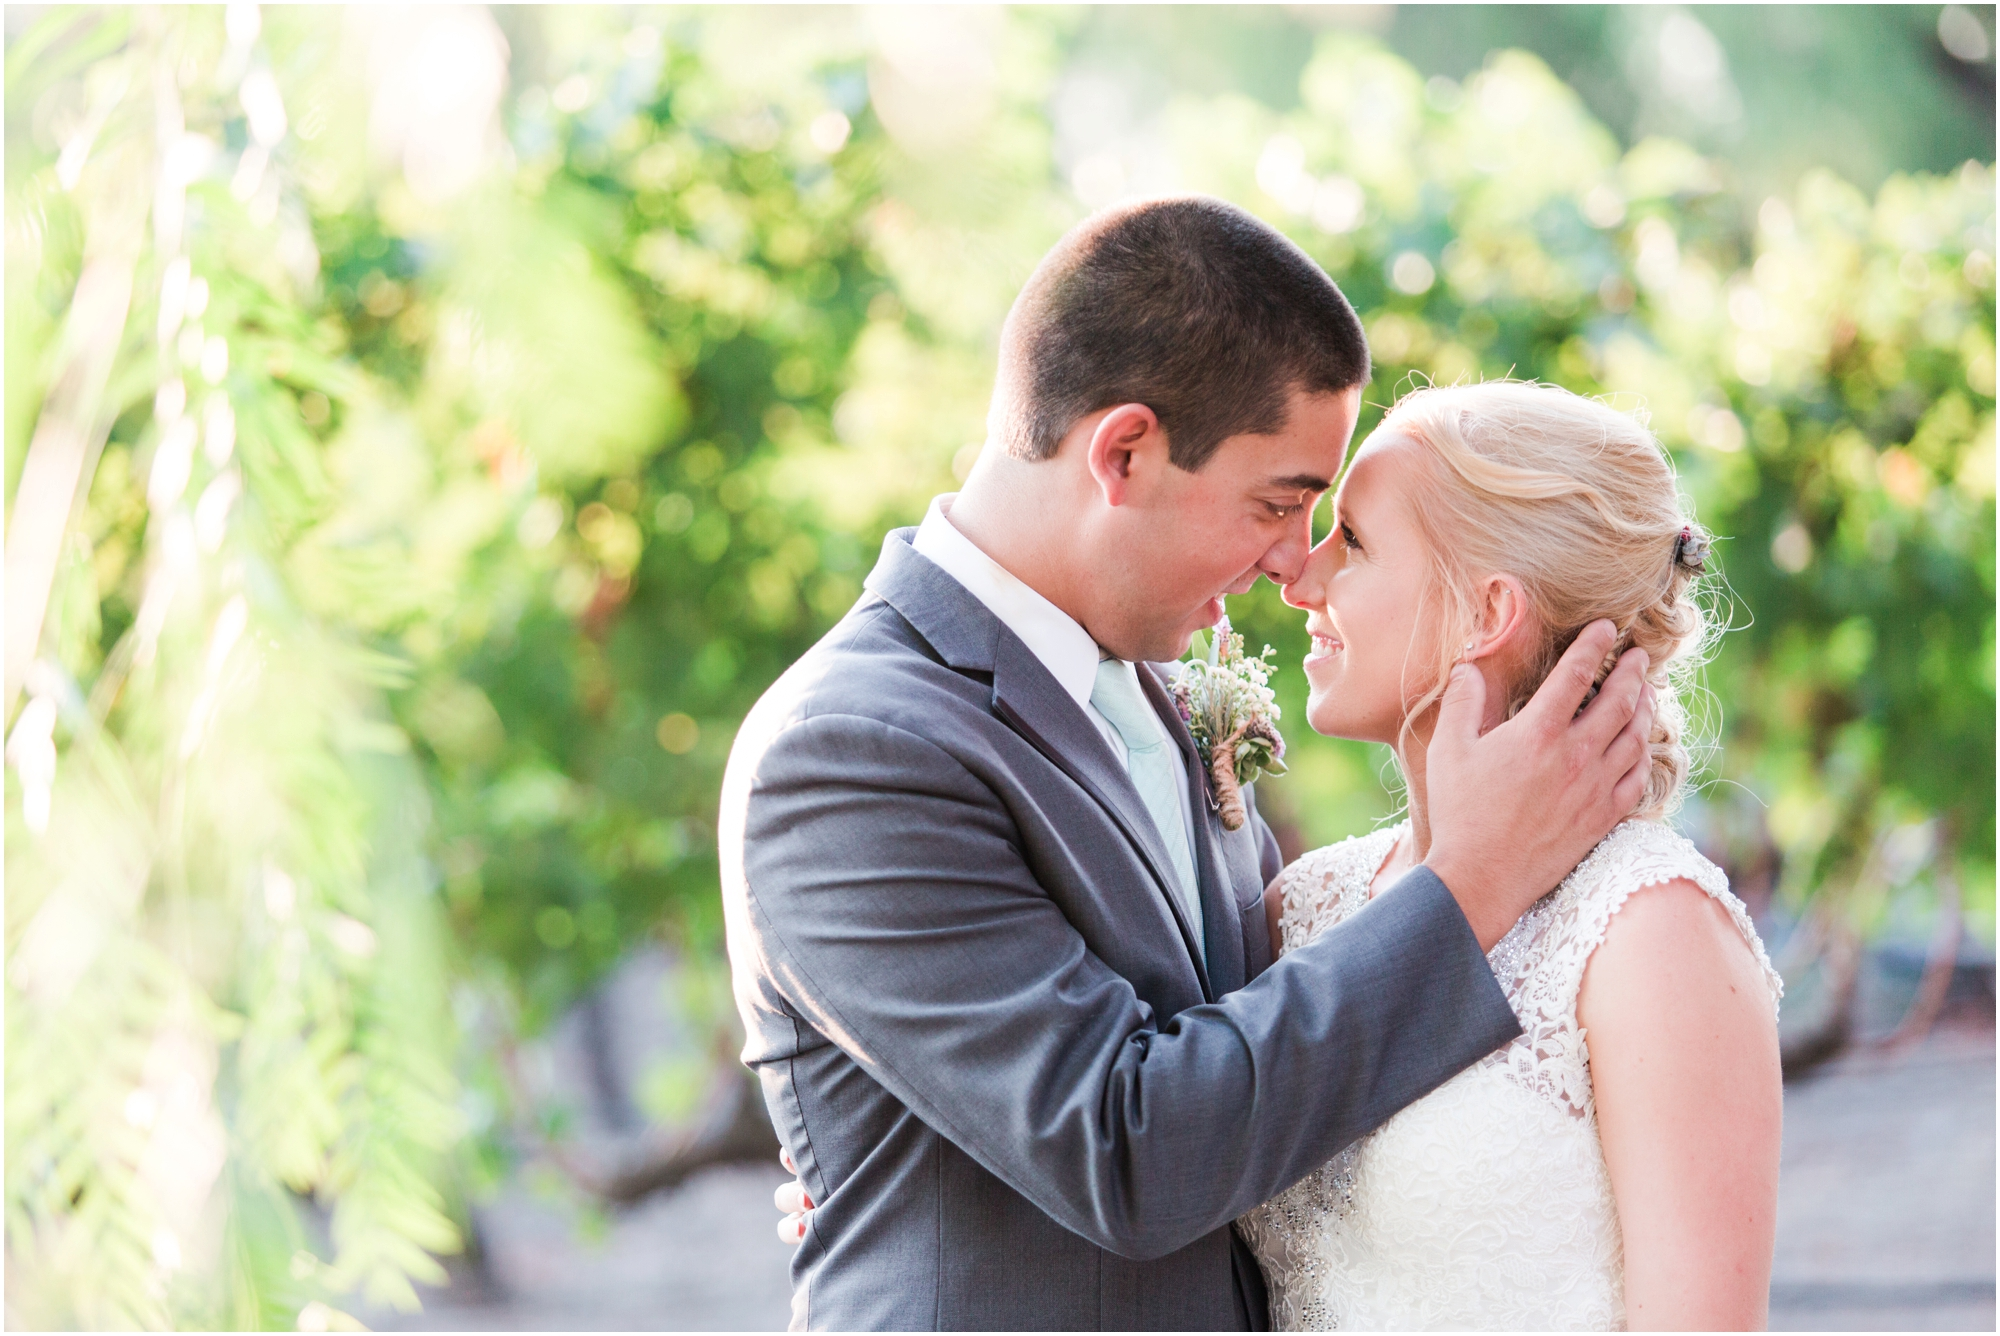 Retzlaff Winery wedding pictures by Briana Calderon Photography_2327.jpg